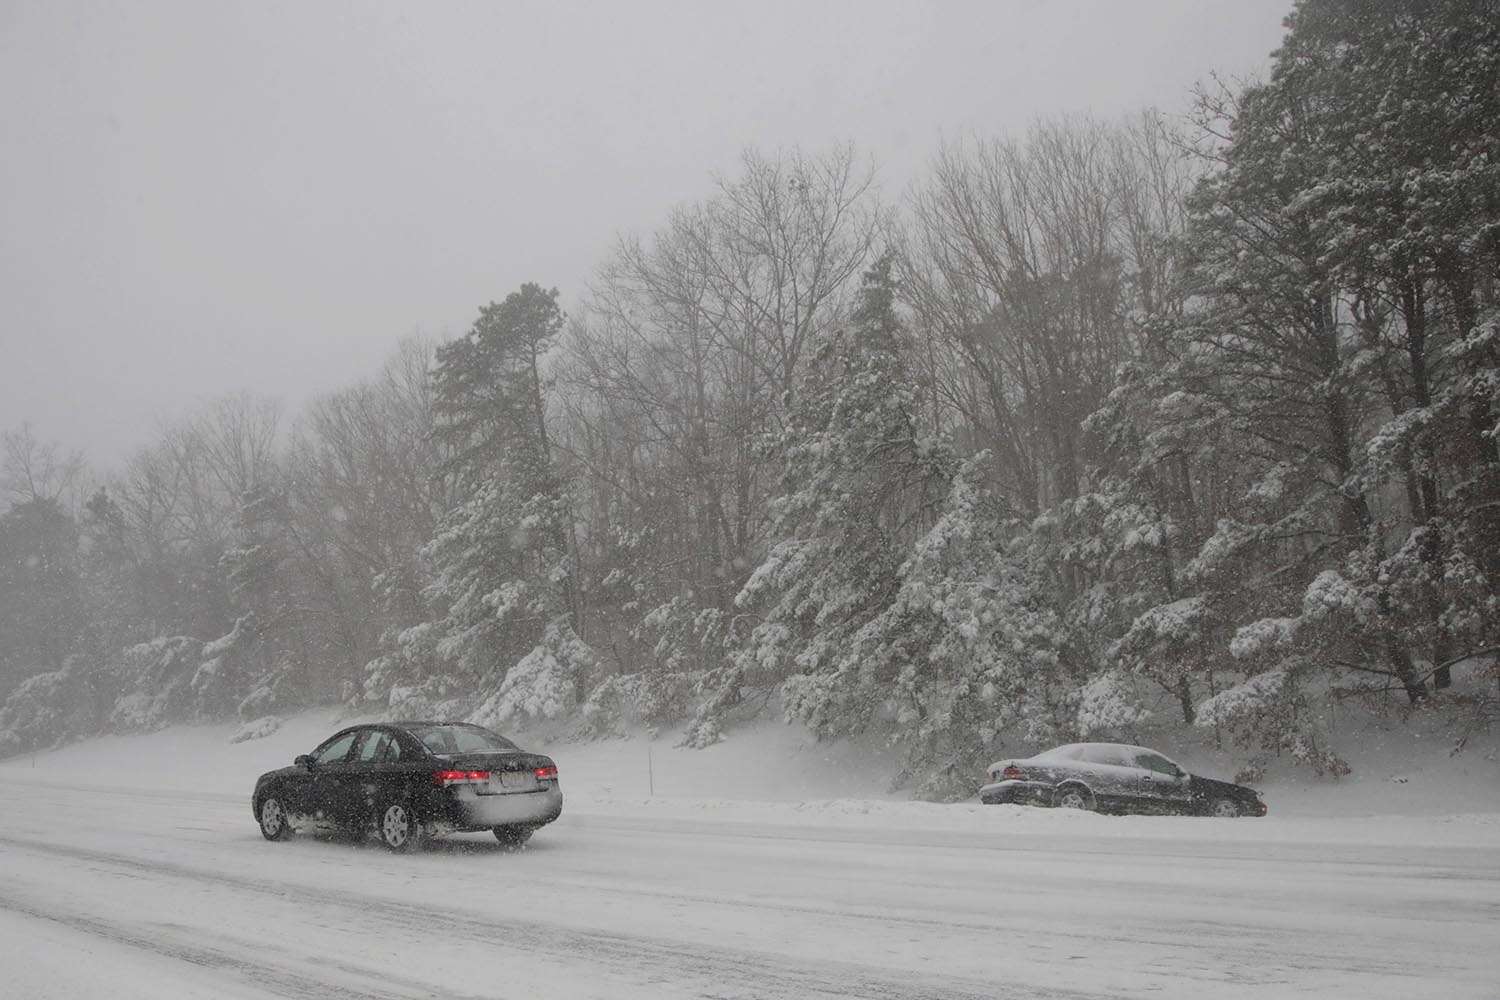 "<div class=""meta image-caption""><div class=""origin-logo origin-image ap""><span>AP</span></div><span class=""caption-text"">A vehicle, right, driven by Orlando Igmat, of New Milford, N.J., sits in a snowbank after skidding off the Garden State Parkway on his way to work during a snowstorm, Jan. 4, 2018. (AP Photo/Julio Cortez)</span></div>"